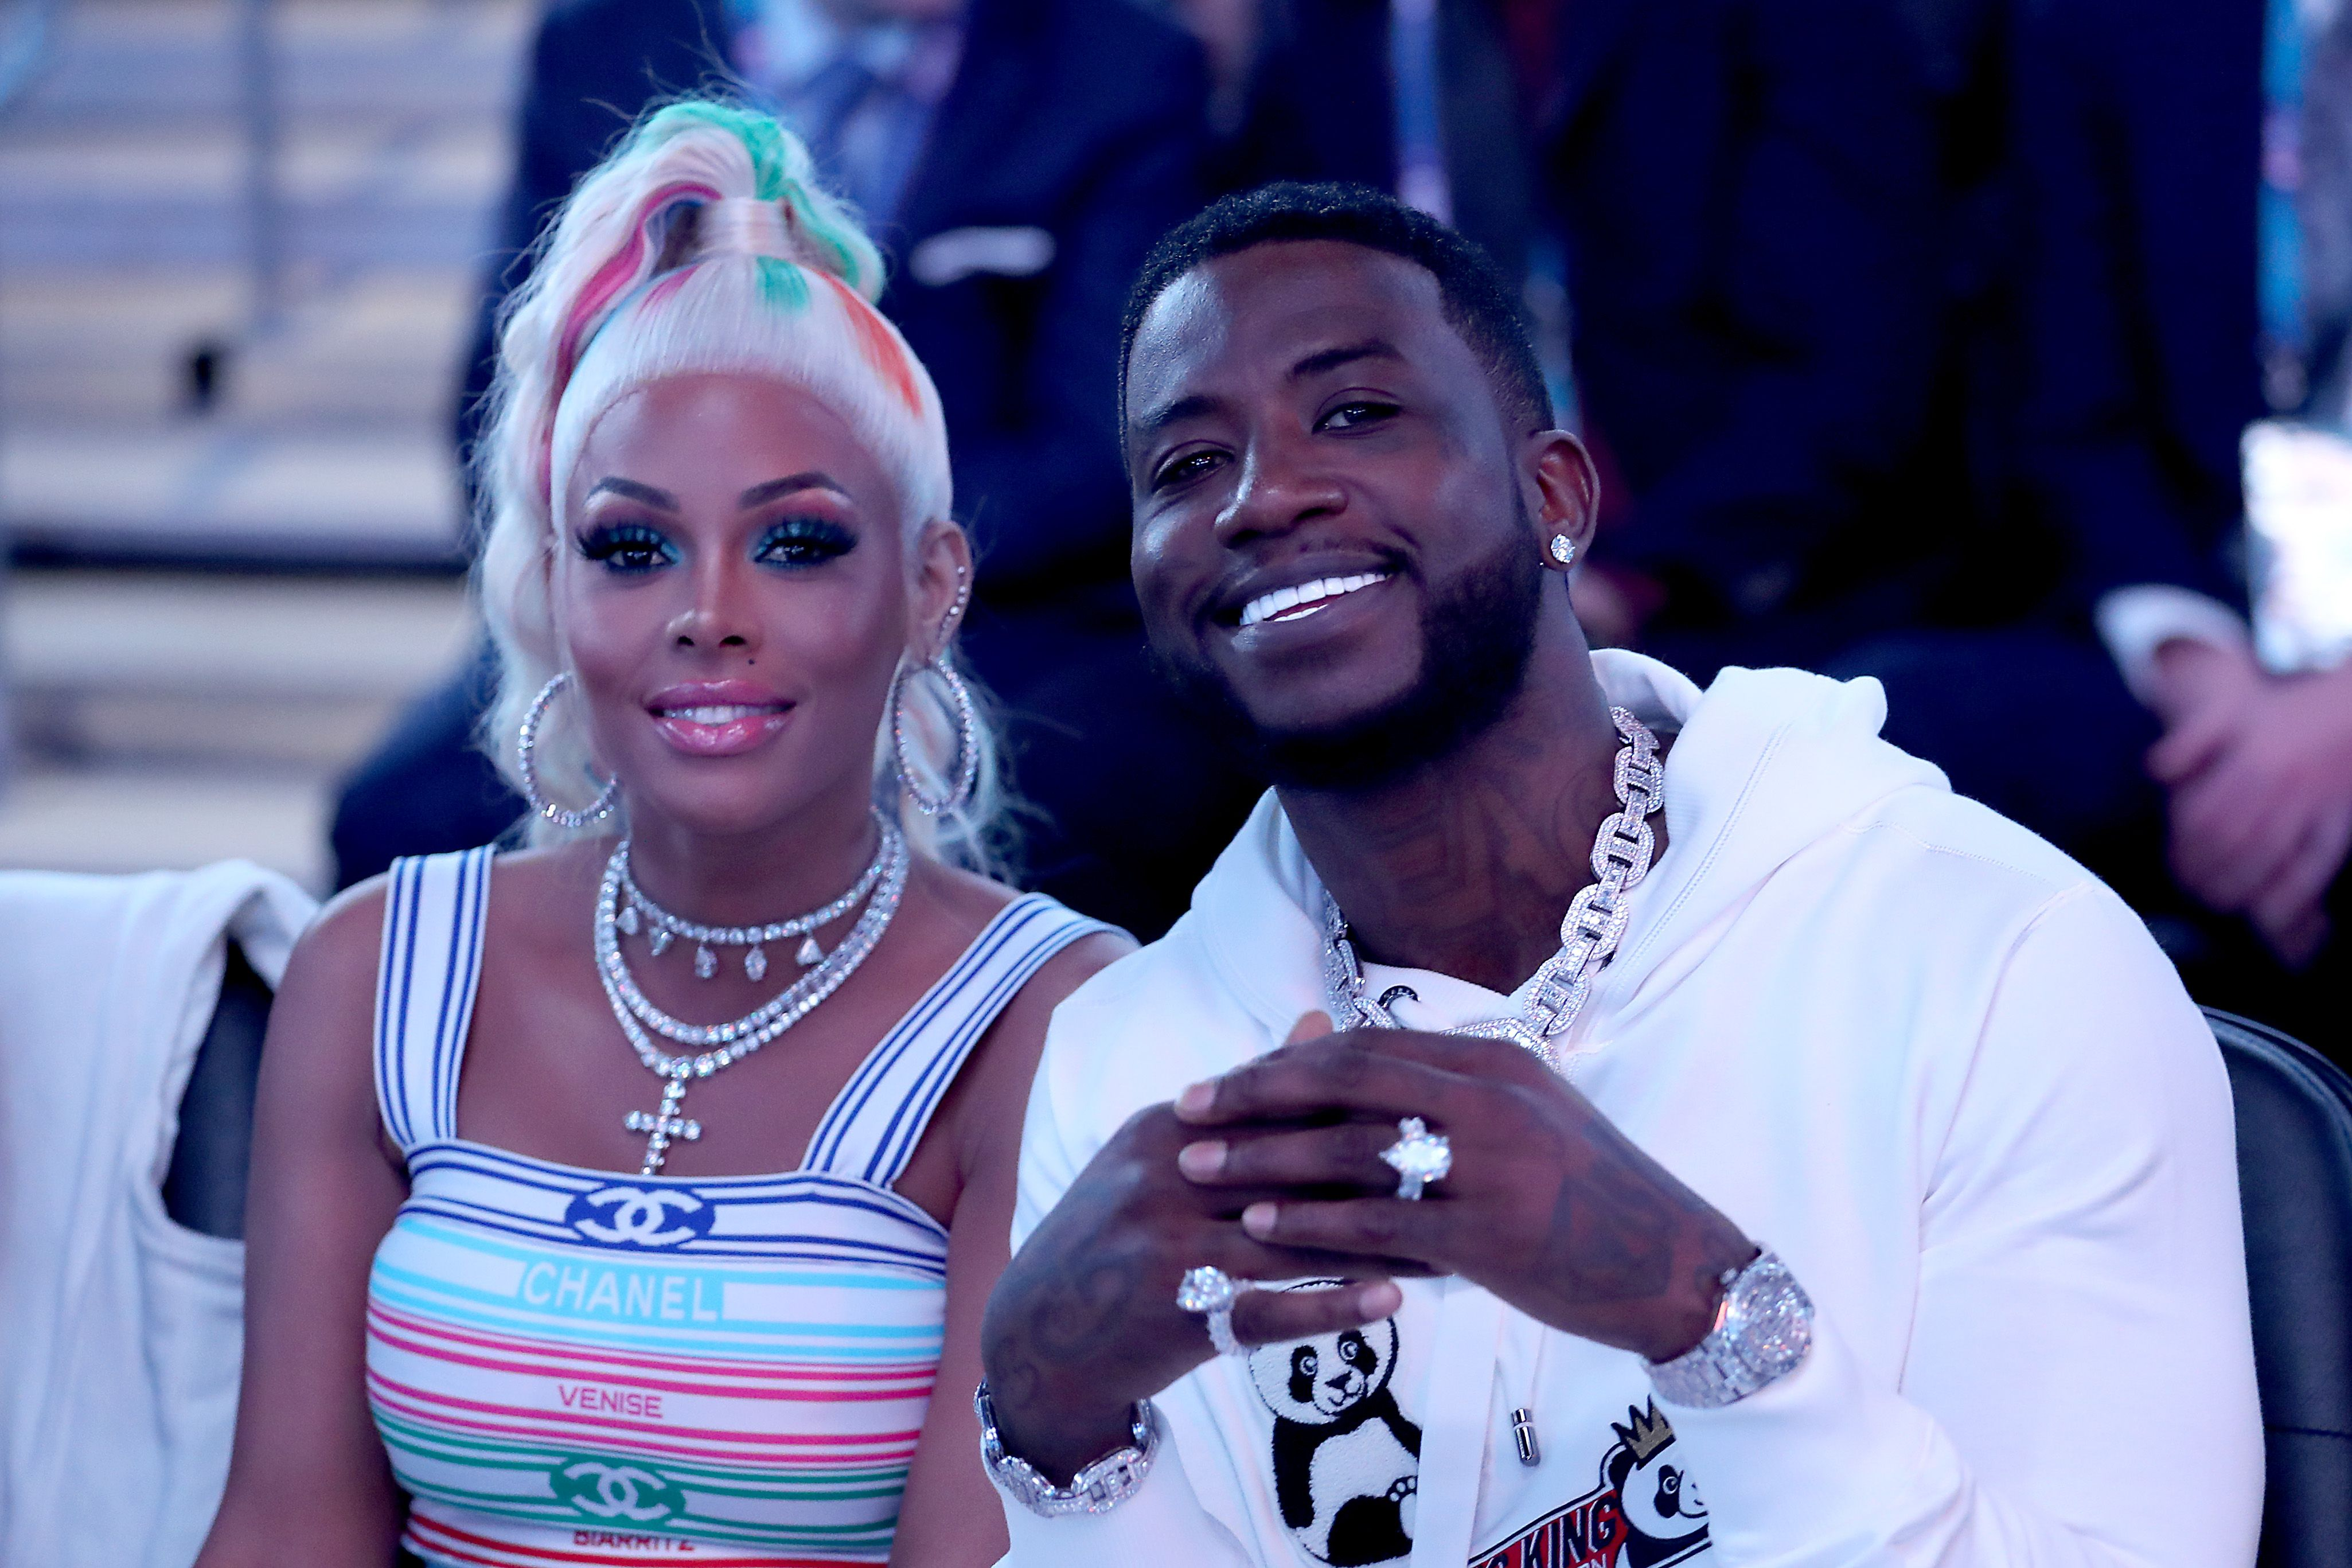 Gucci Mane and Keyshia Ka'oir at the 2019 NBA All-Star Weekend at Spectrum Center on February 17, 2019 | Photo by Streeter Lecka/Getty Images